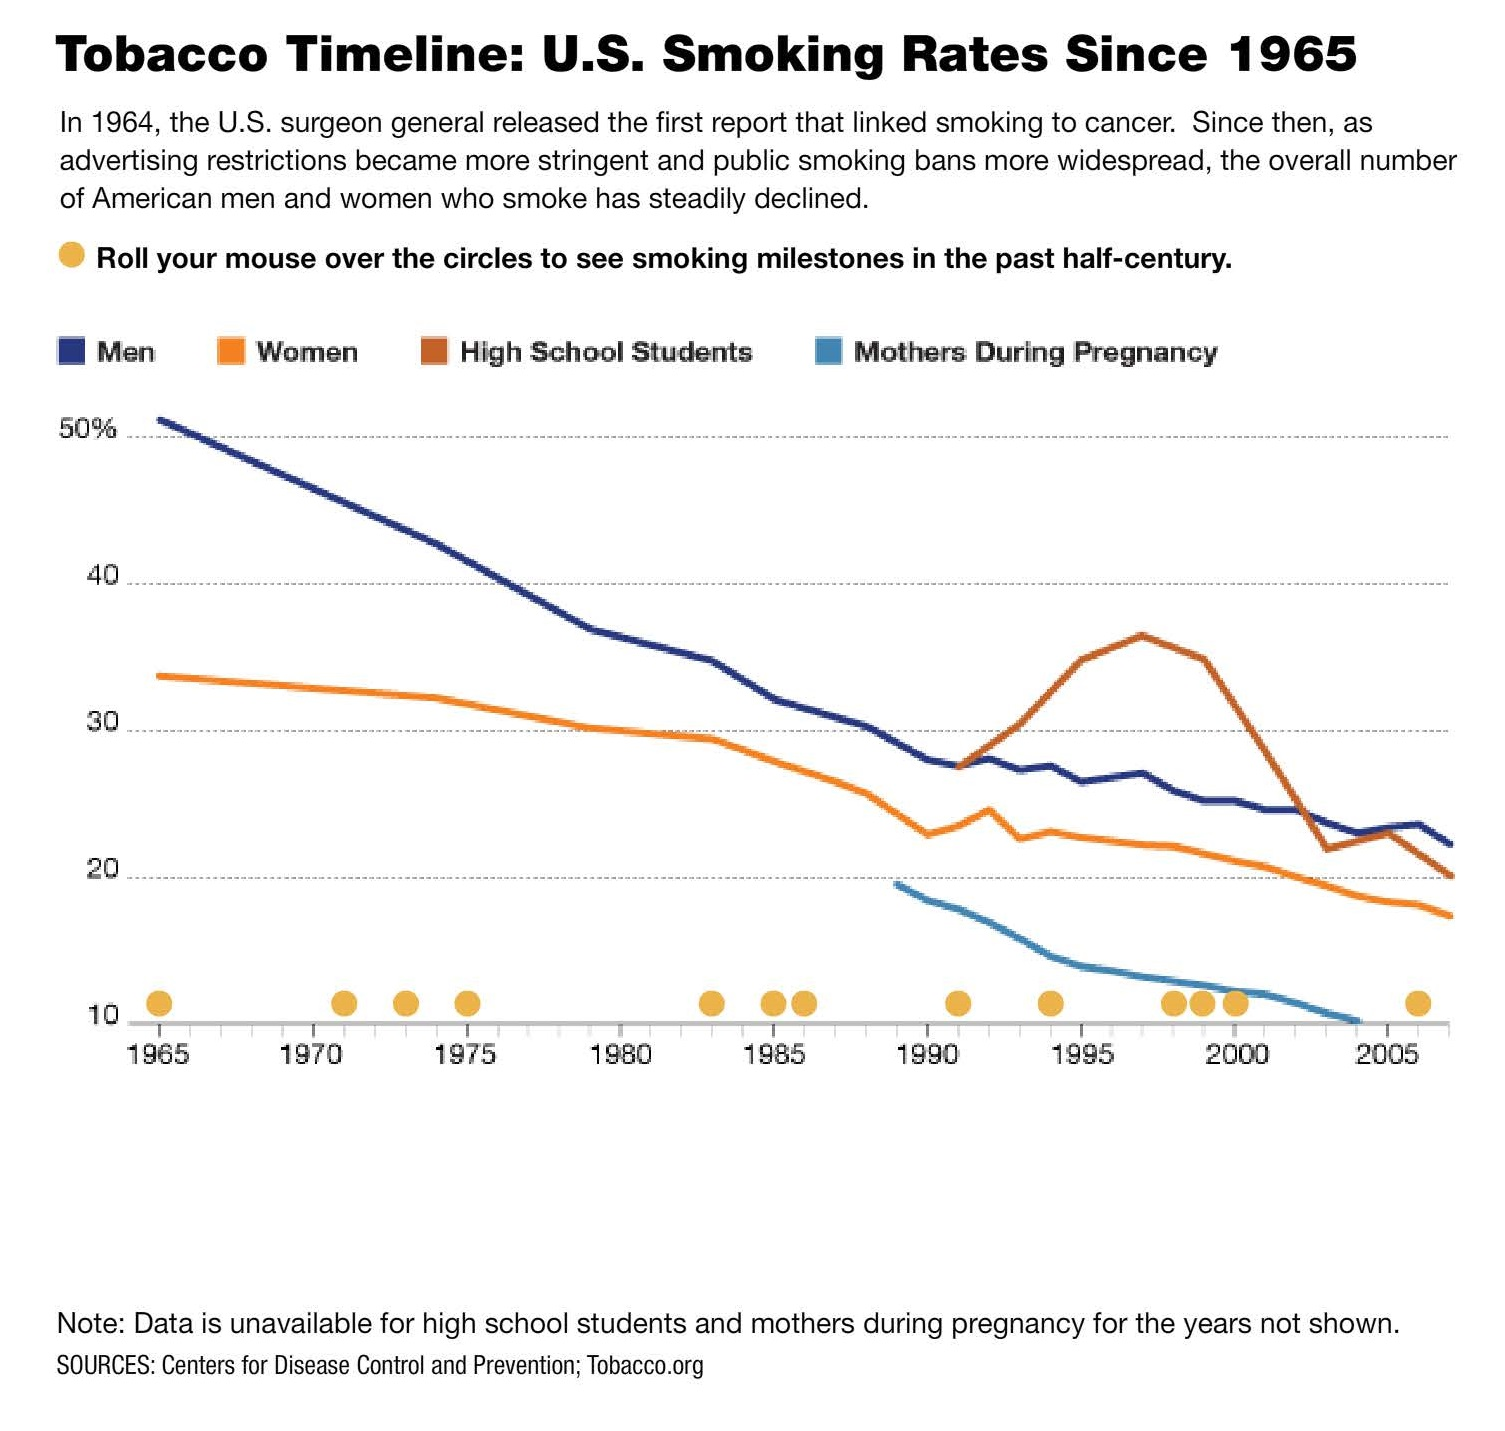 US Smoking Rates